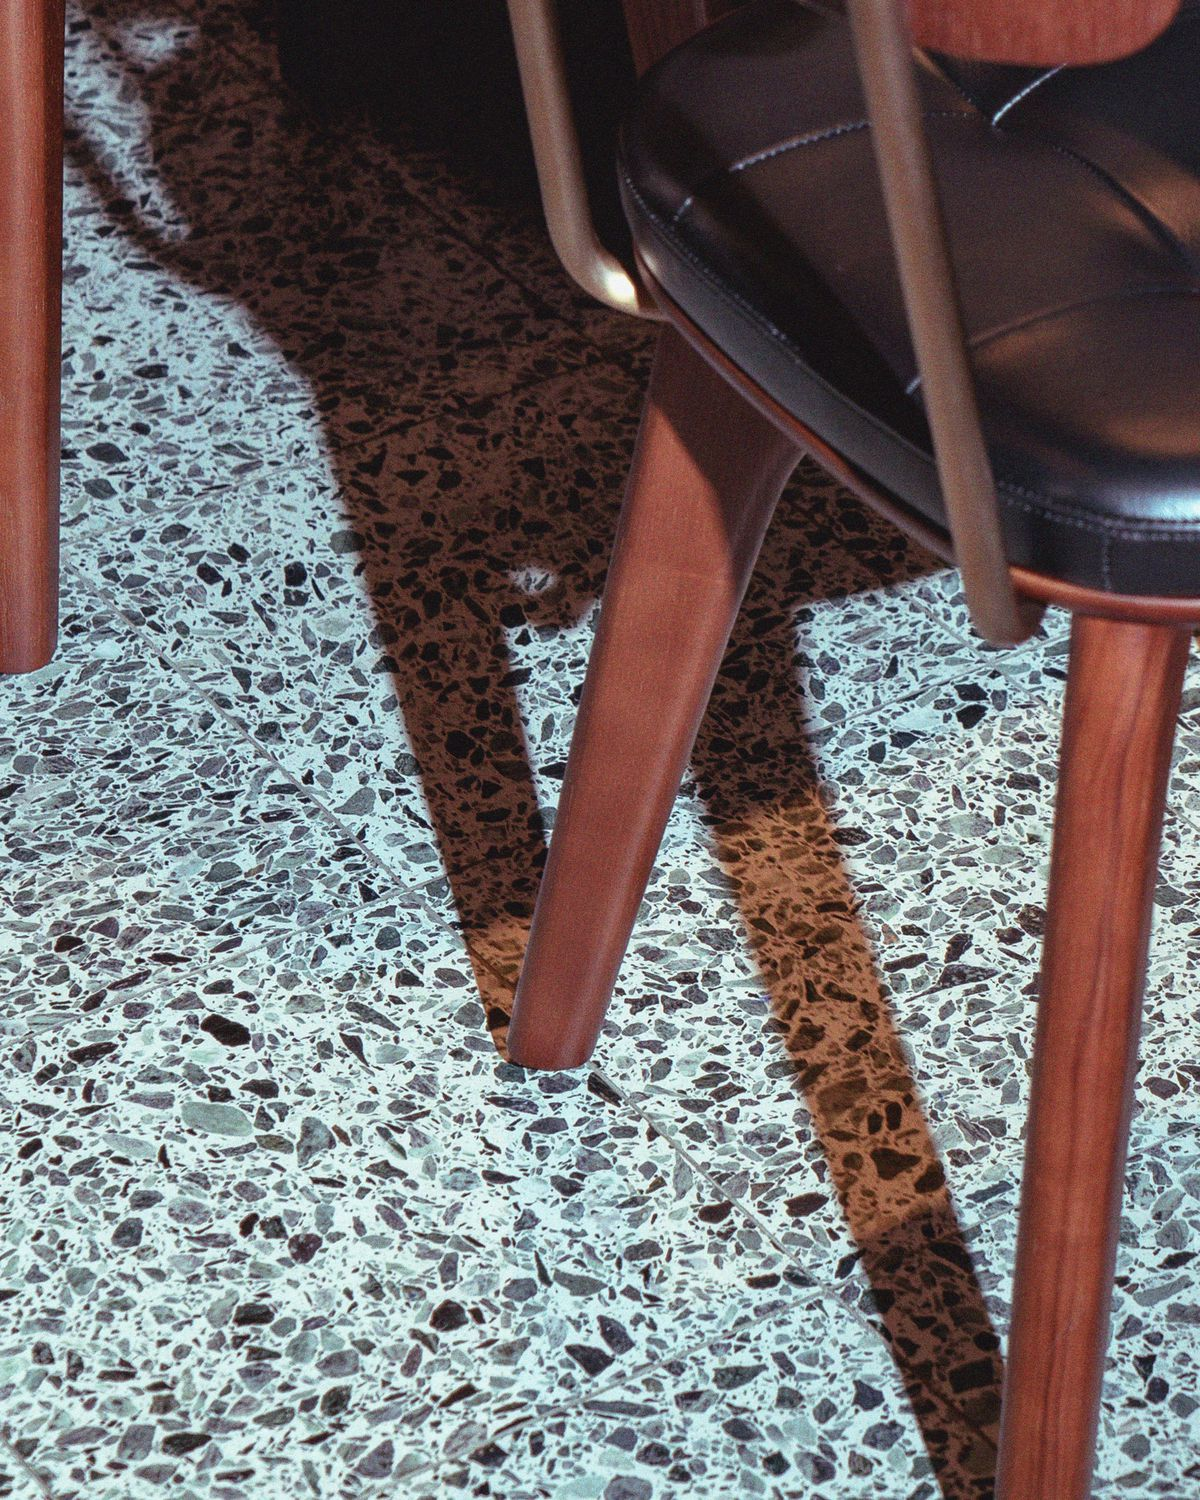 Terrazzo detailing at Kym's in the Bloomberg Arcade restaurant development, London - the follow-up to Michelin-starred dim sum restaurant A. Wong in Victoria